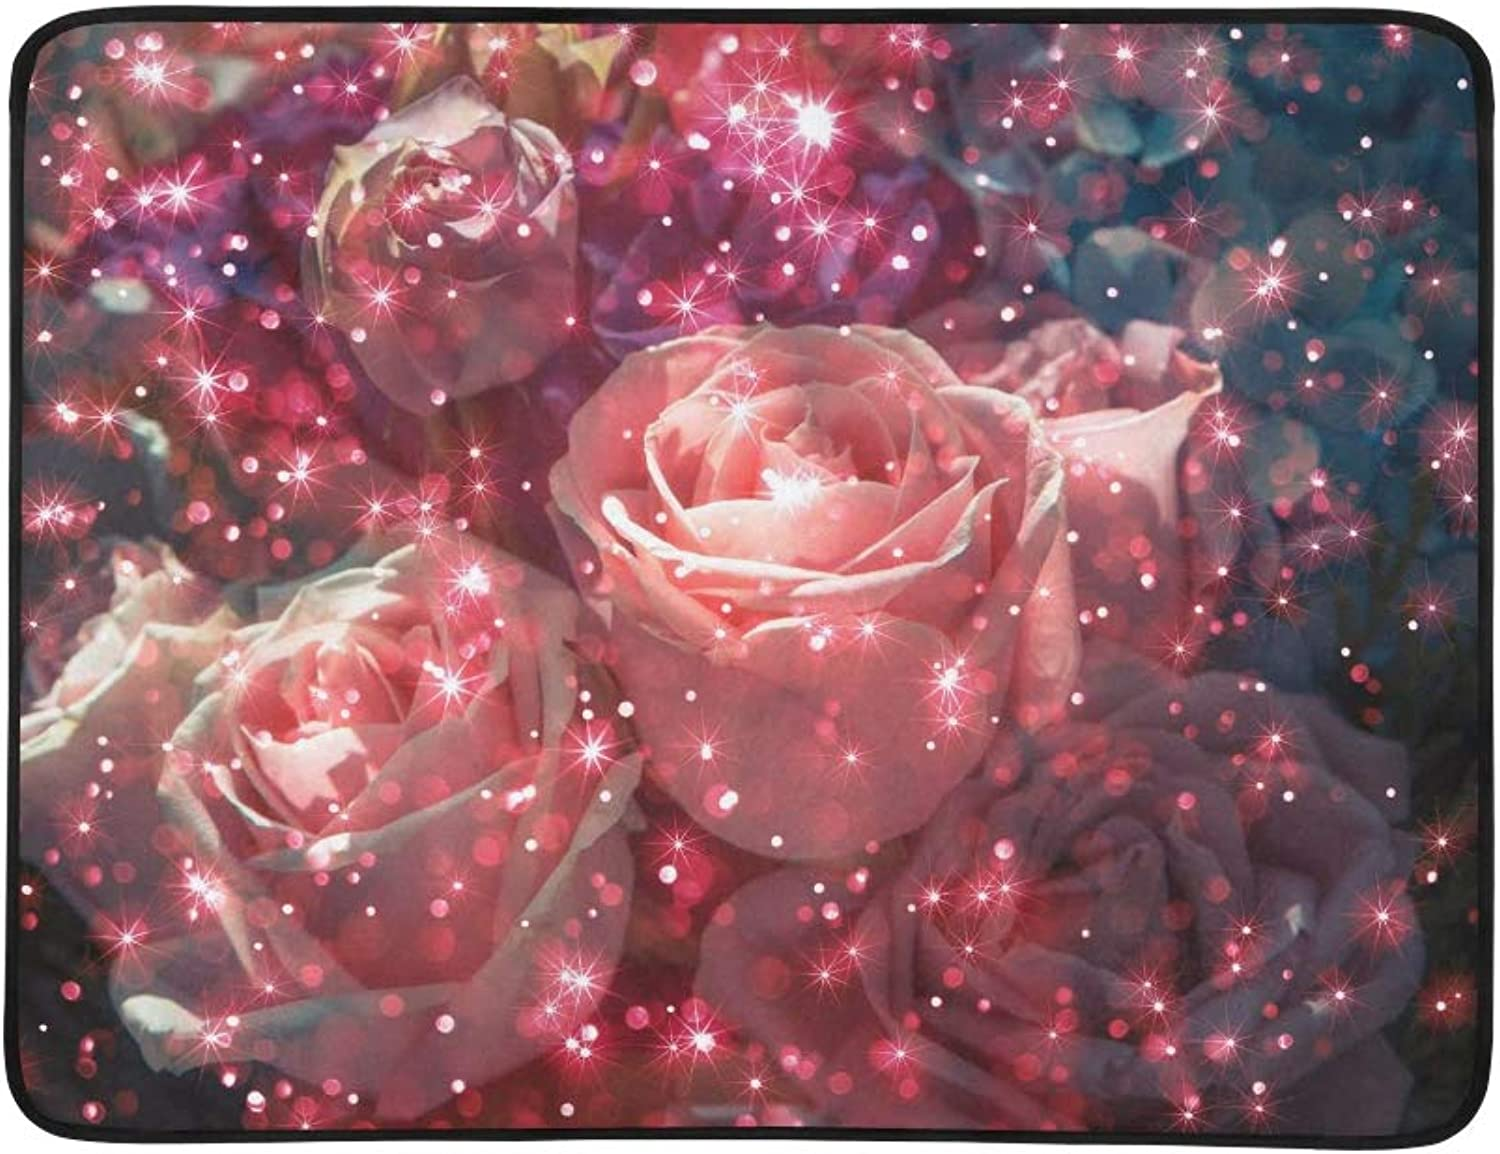 Abstract Bouquet pink Flower with Glitter On Dark Pattern Portable and Foldable Blanket Mat 60x78 Inch Handy Mat for Camping Picnic Beach Indoor Outdoor Travel